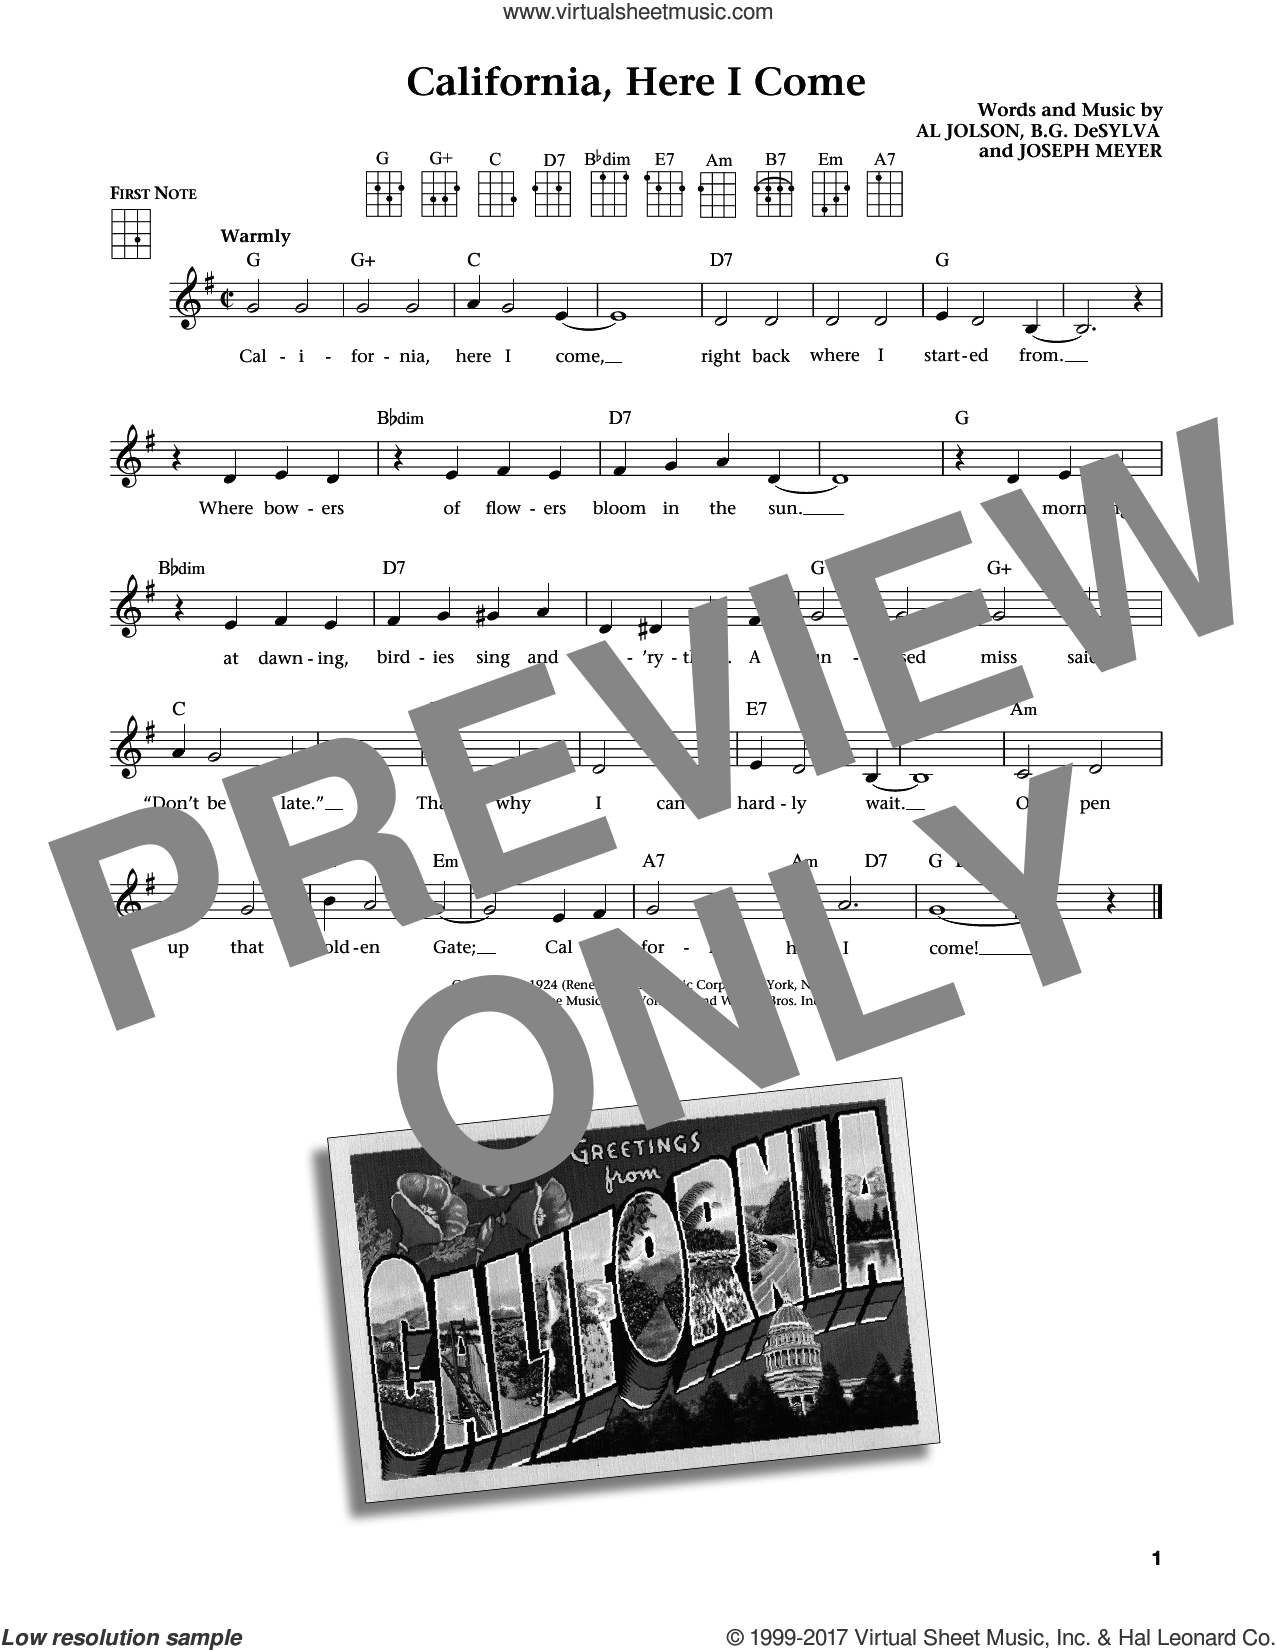 California, Here I Come sheet music for ukulele by Benny Goodman & His Orchestra, Al Jolson, Buddy DeSylva and Joseph Meyer. Score Image Preview.